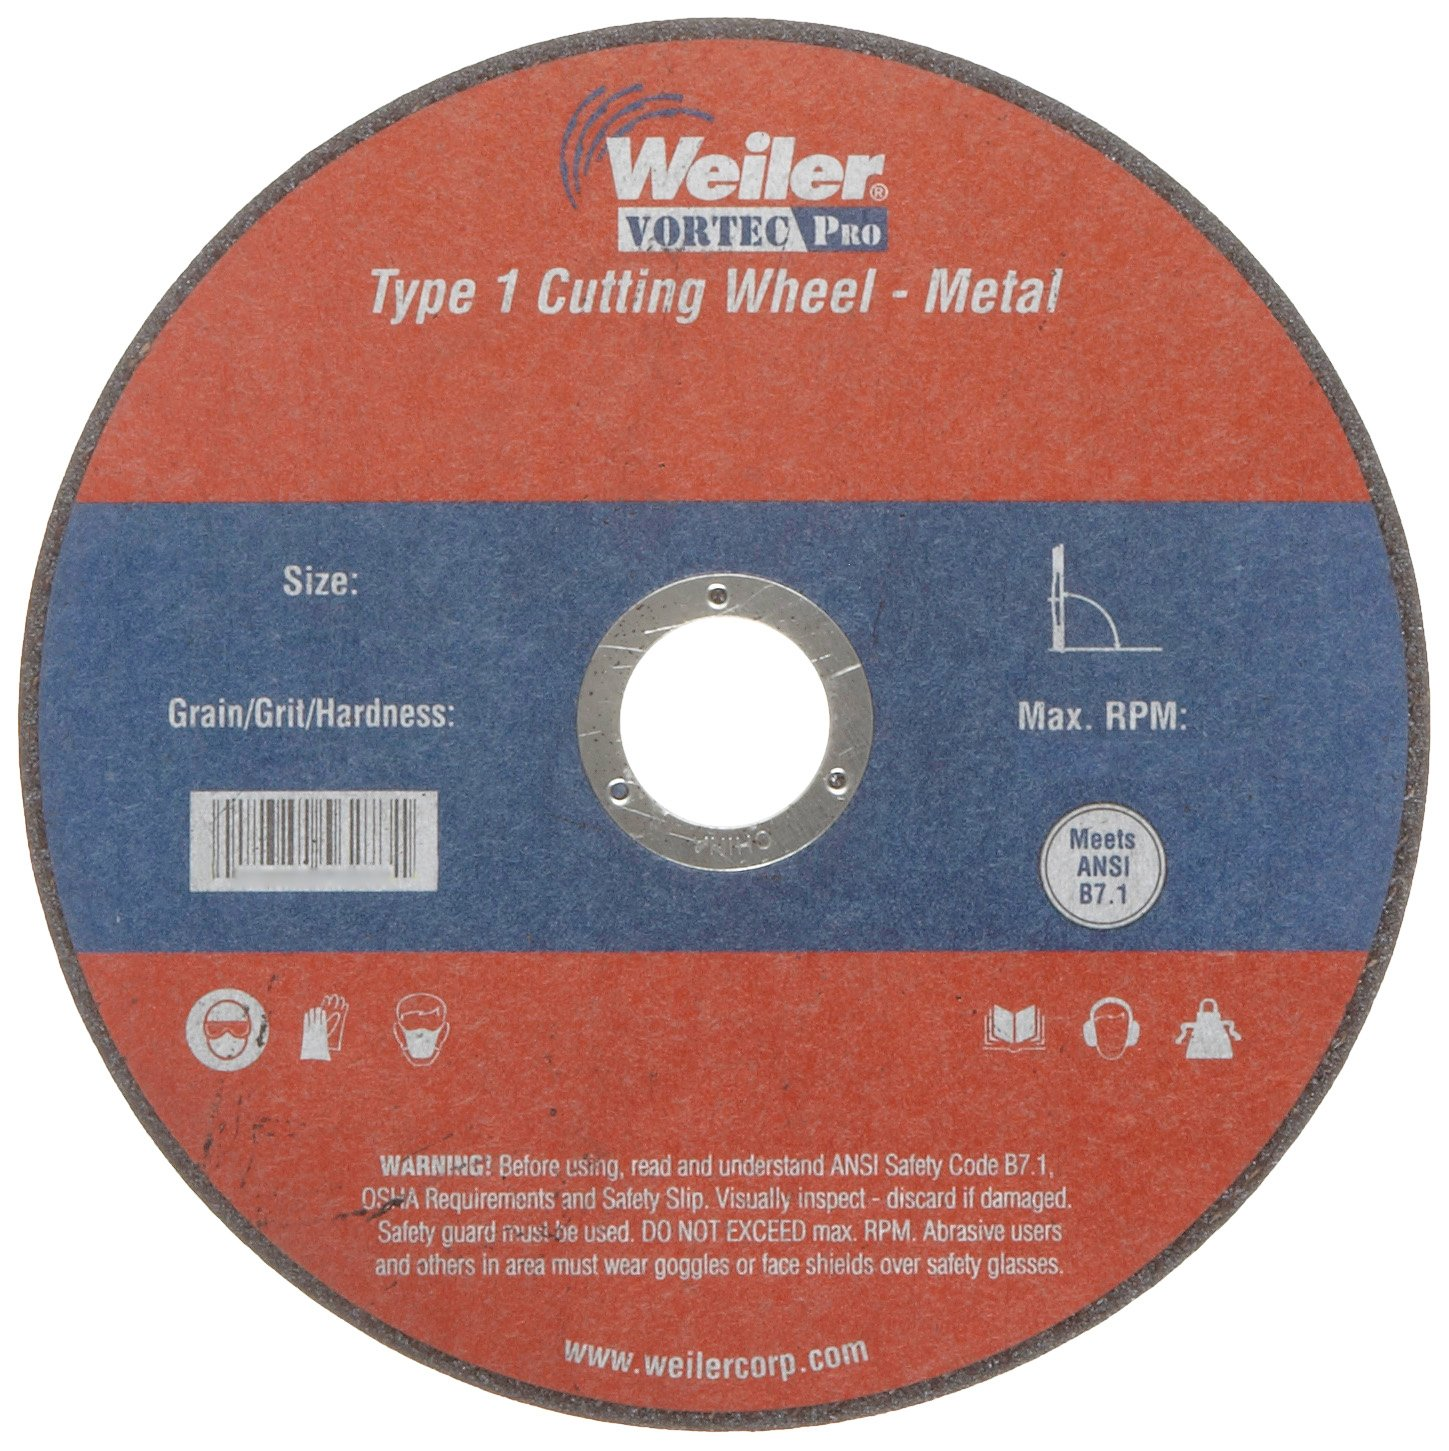 0.045 Thickness A60T Grit Weiler 7//8 Arbor 6 Diameter Type 1 Large Reinforced Cut-Off Wheel 0.045 Thickness 6 Diameter Weiler Corporation 56273